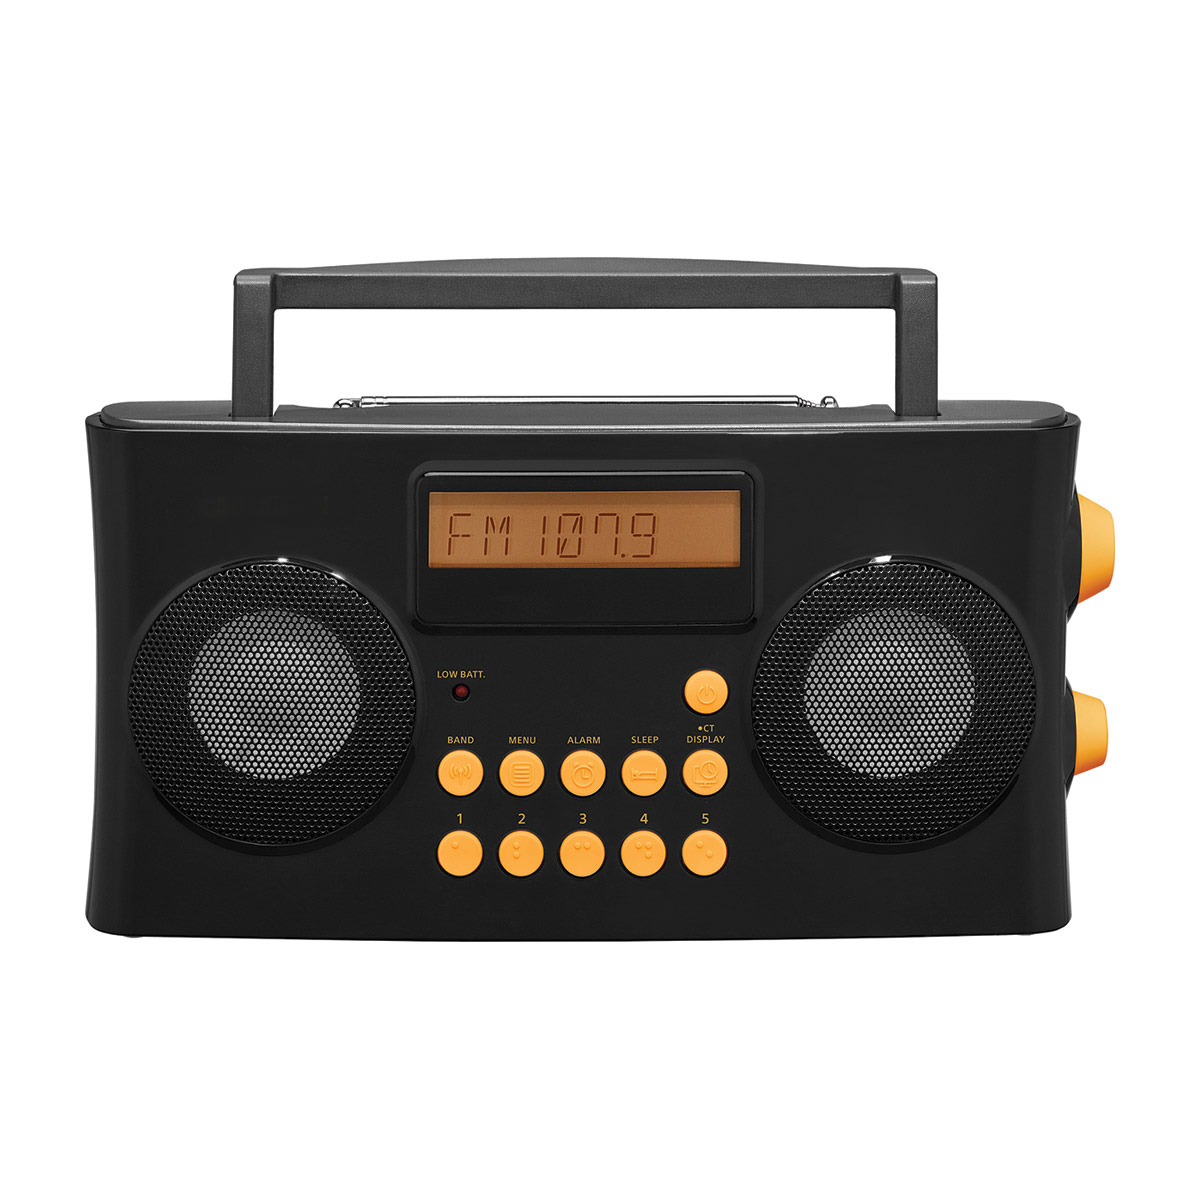 AM FM Portable Radio with Voice Prompts for Visually Impaired